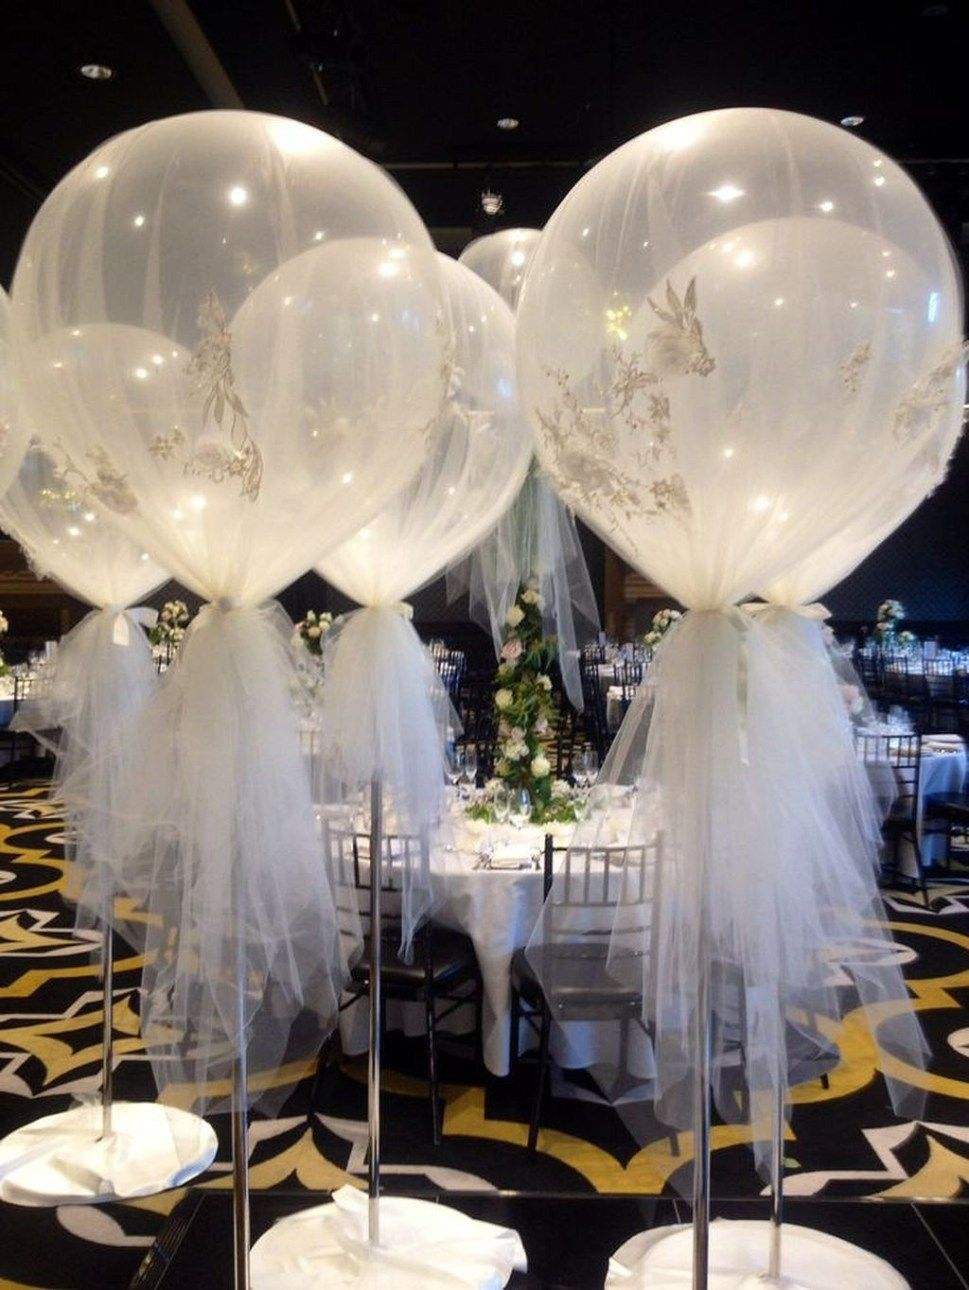 Wedding decoration ideas simple   Simple and Beautiful Balloon Wedding Centerpieces Decoration